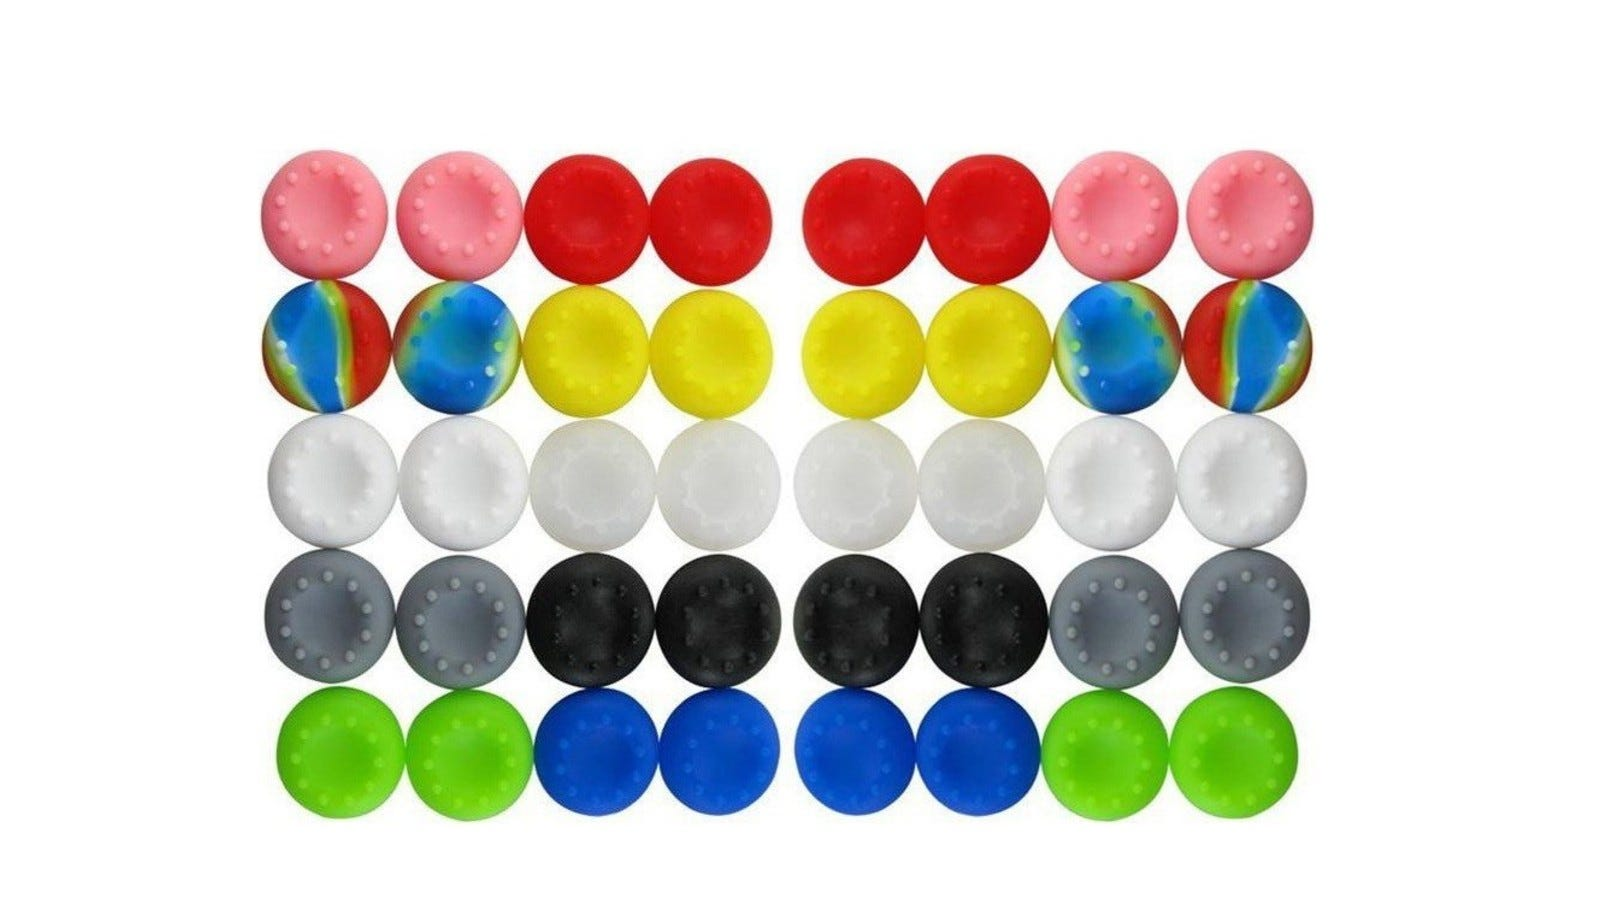 A set of 40 Xbox One thumb grips that come in various colors